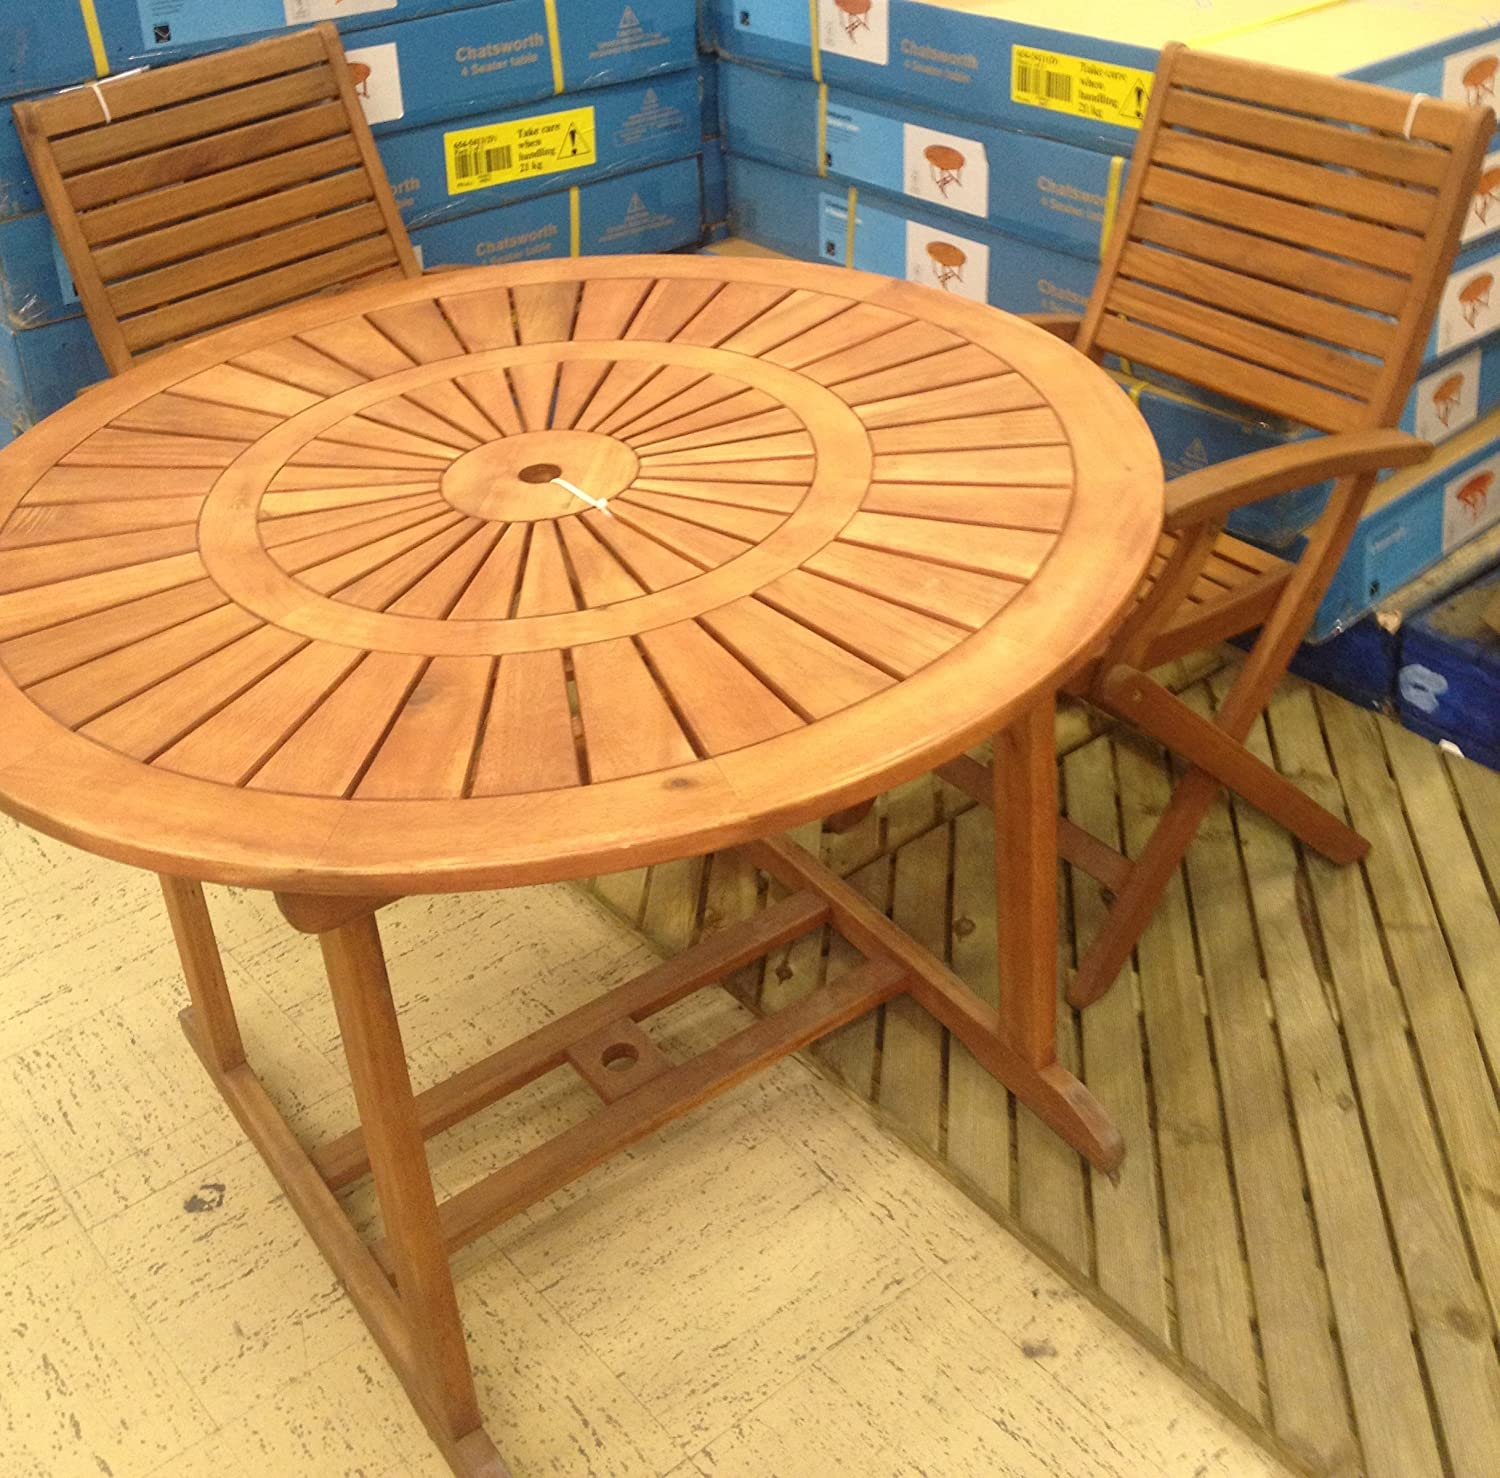 Patio Furniture Southern New Jersey: Chatsworth 4 Seater Round Outdoor Garden Patio Table Only